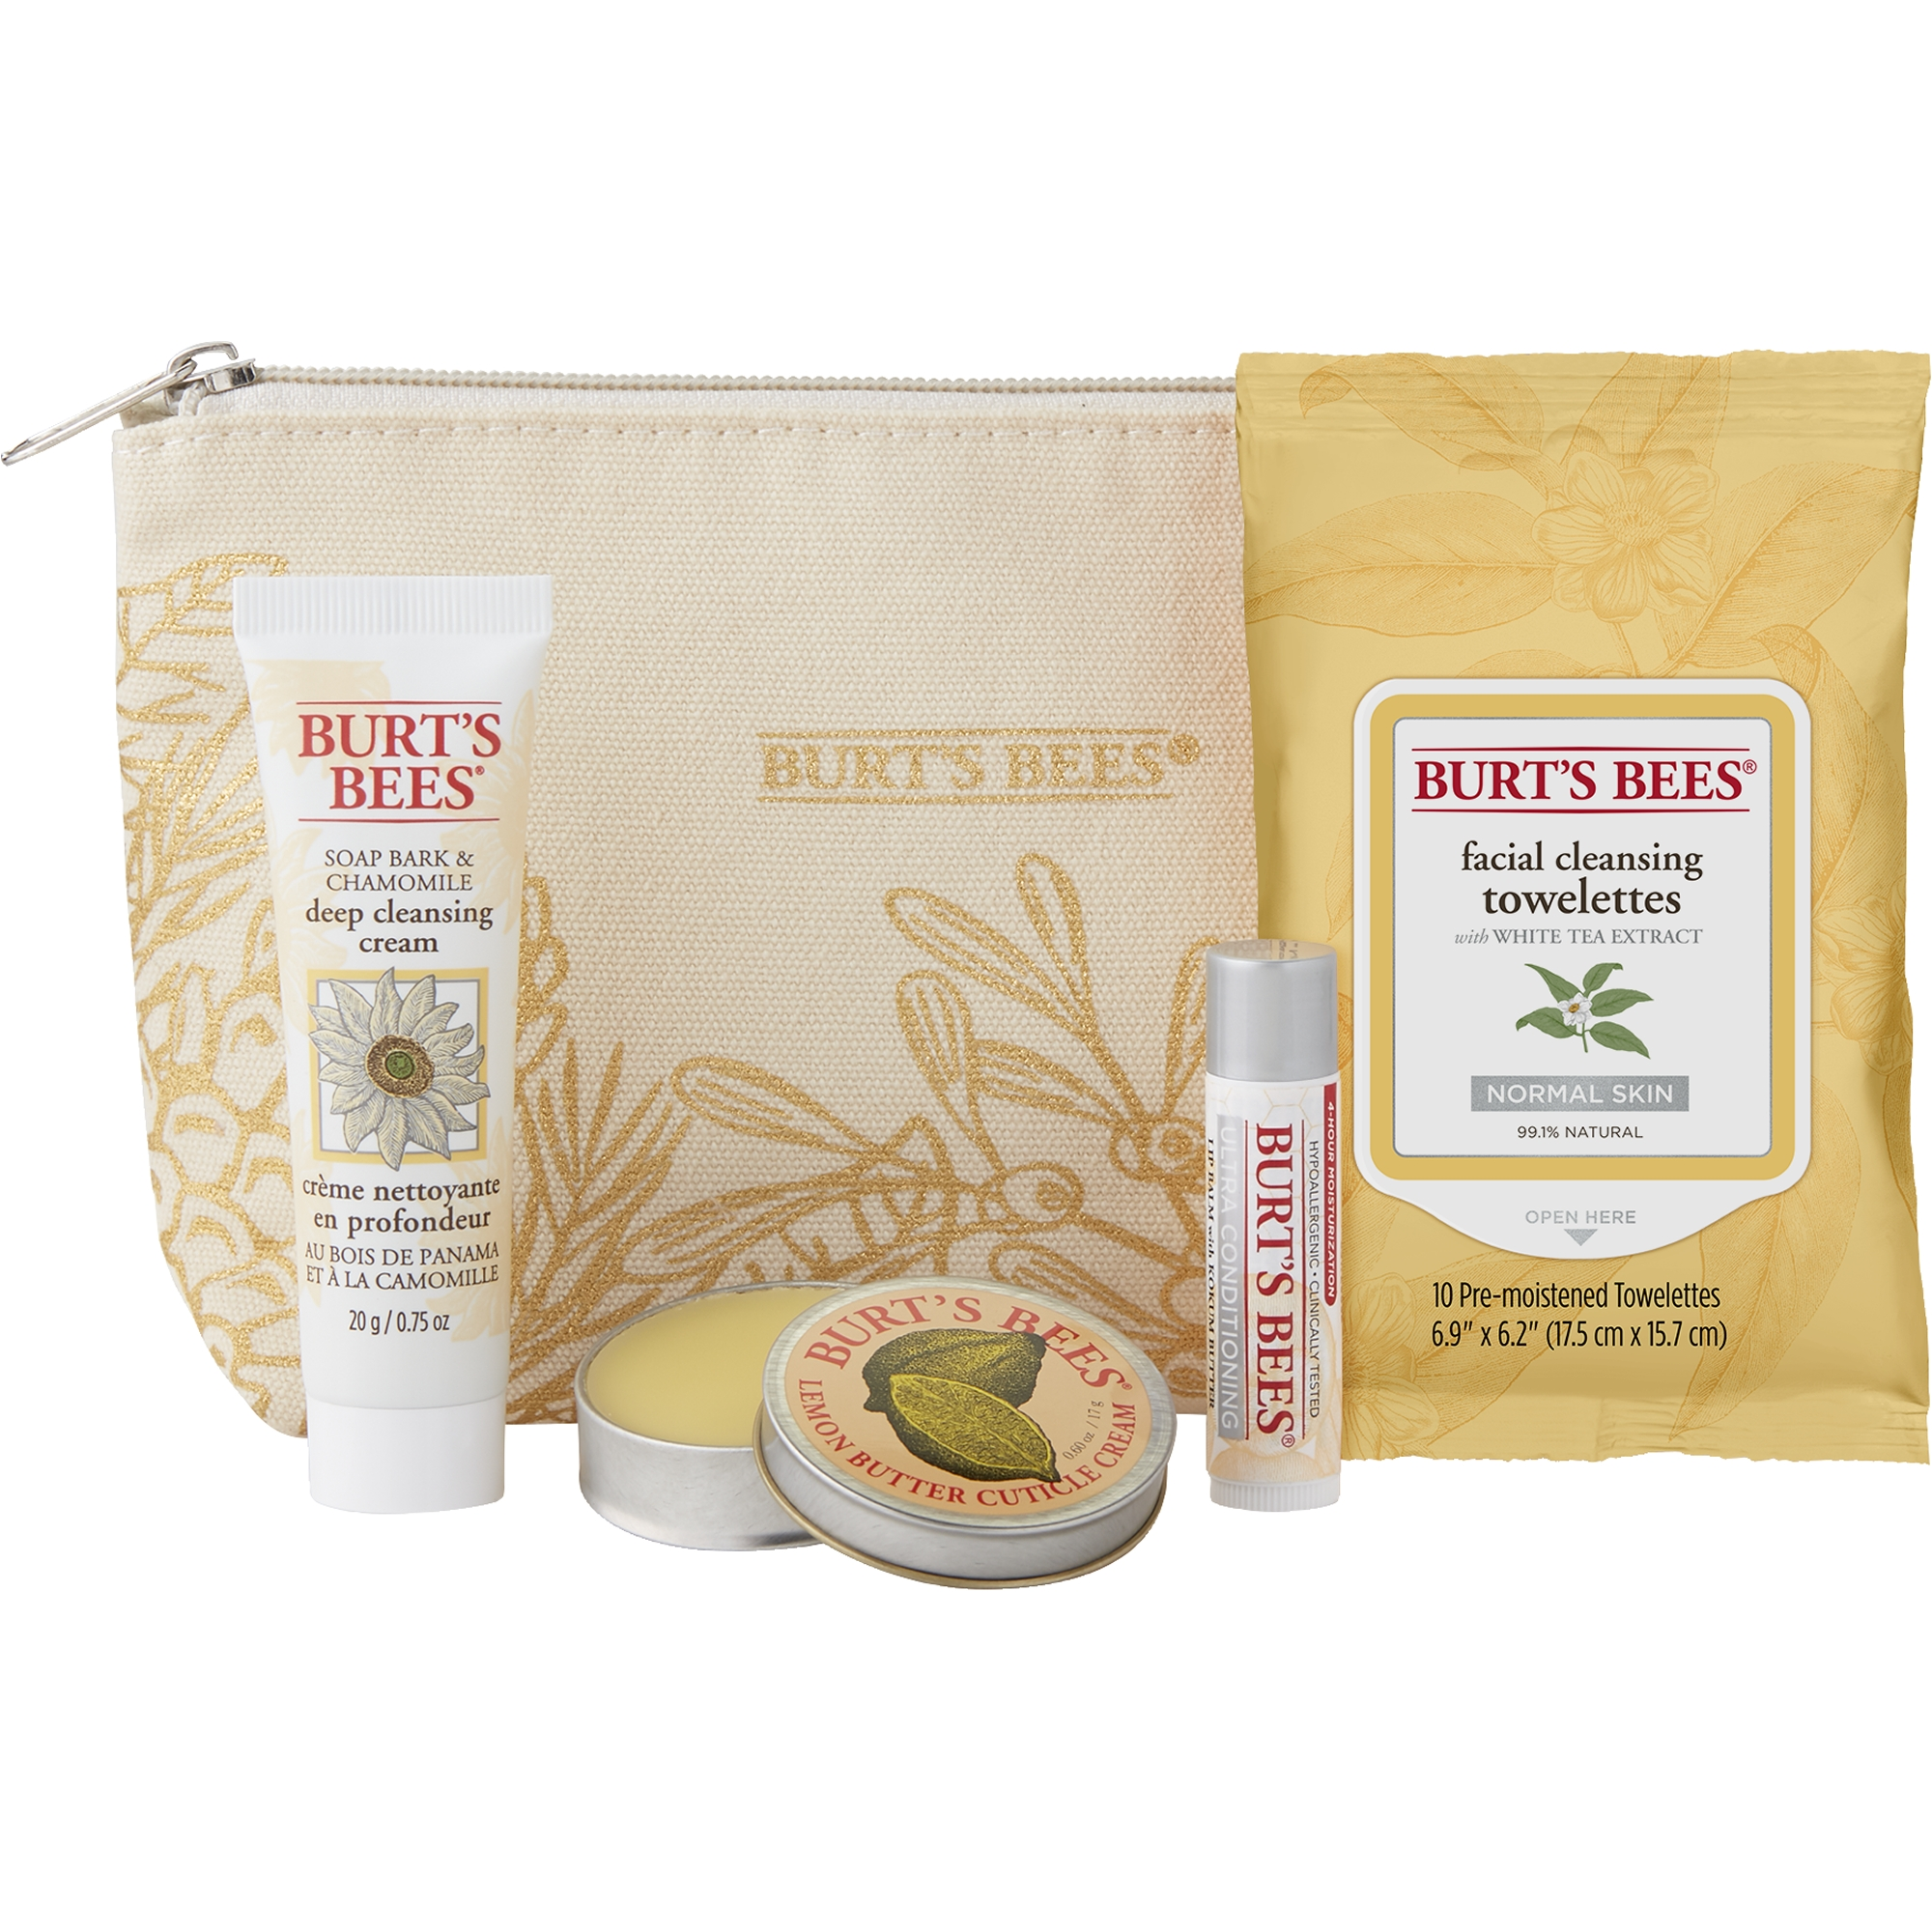 Burt's Bees Essentials Travel Kit Holiday Gift Set, 4 Skin Care Products - Cleansing Towelettes, Deep Cleansing Cream, Cuticle Cream and Lip Balm